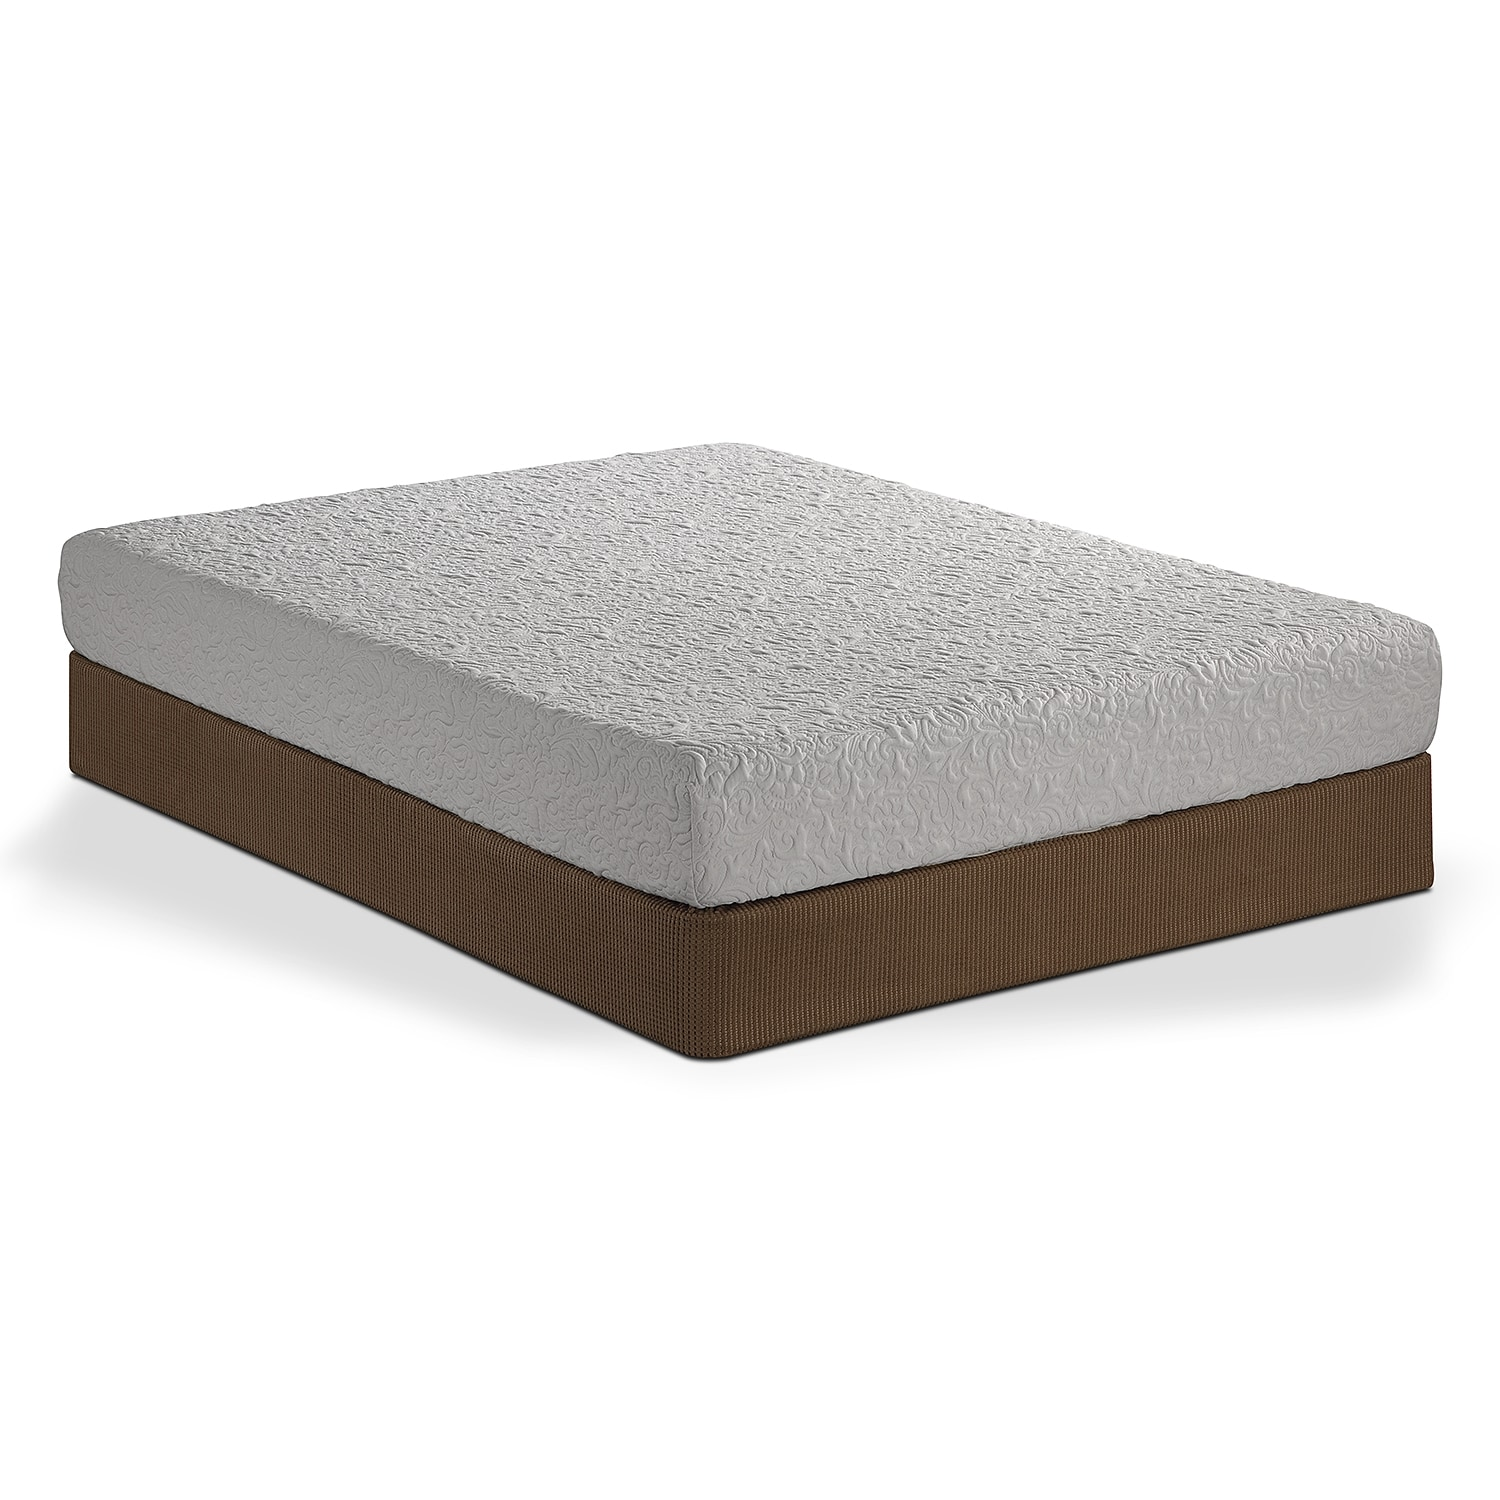 And Bedding Icomfort Insight Queen Mattresssplit Foundation Set Bed Mattress Sale